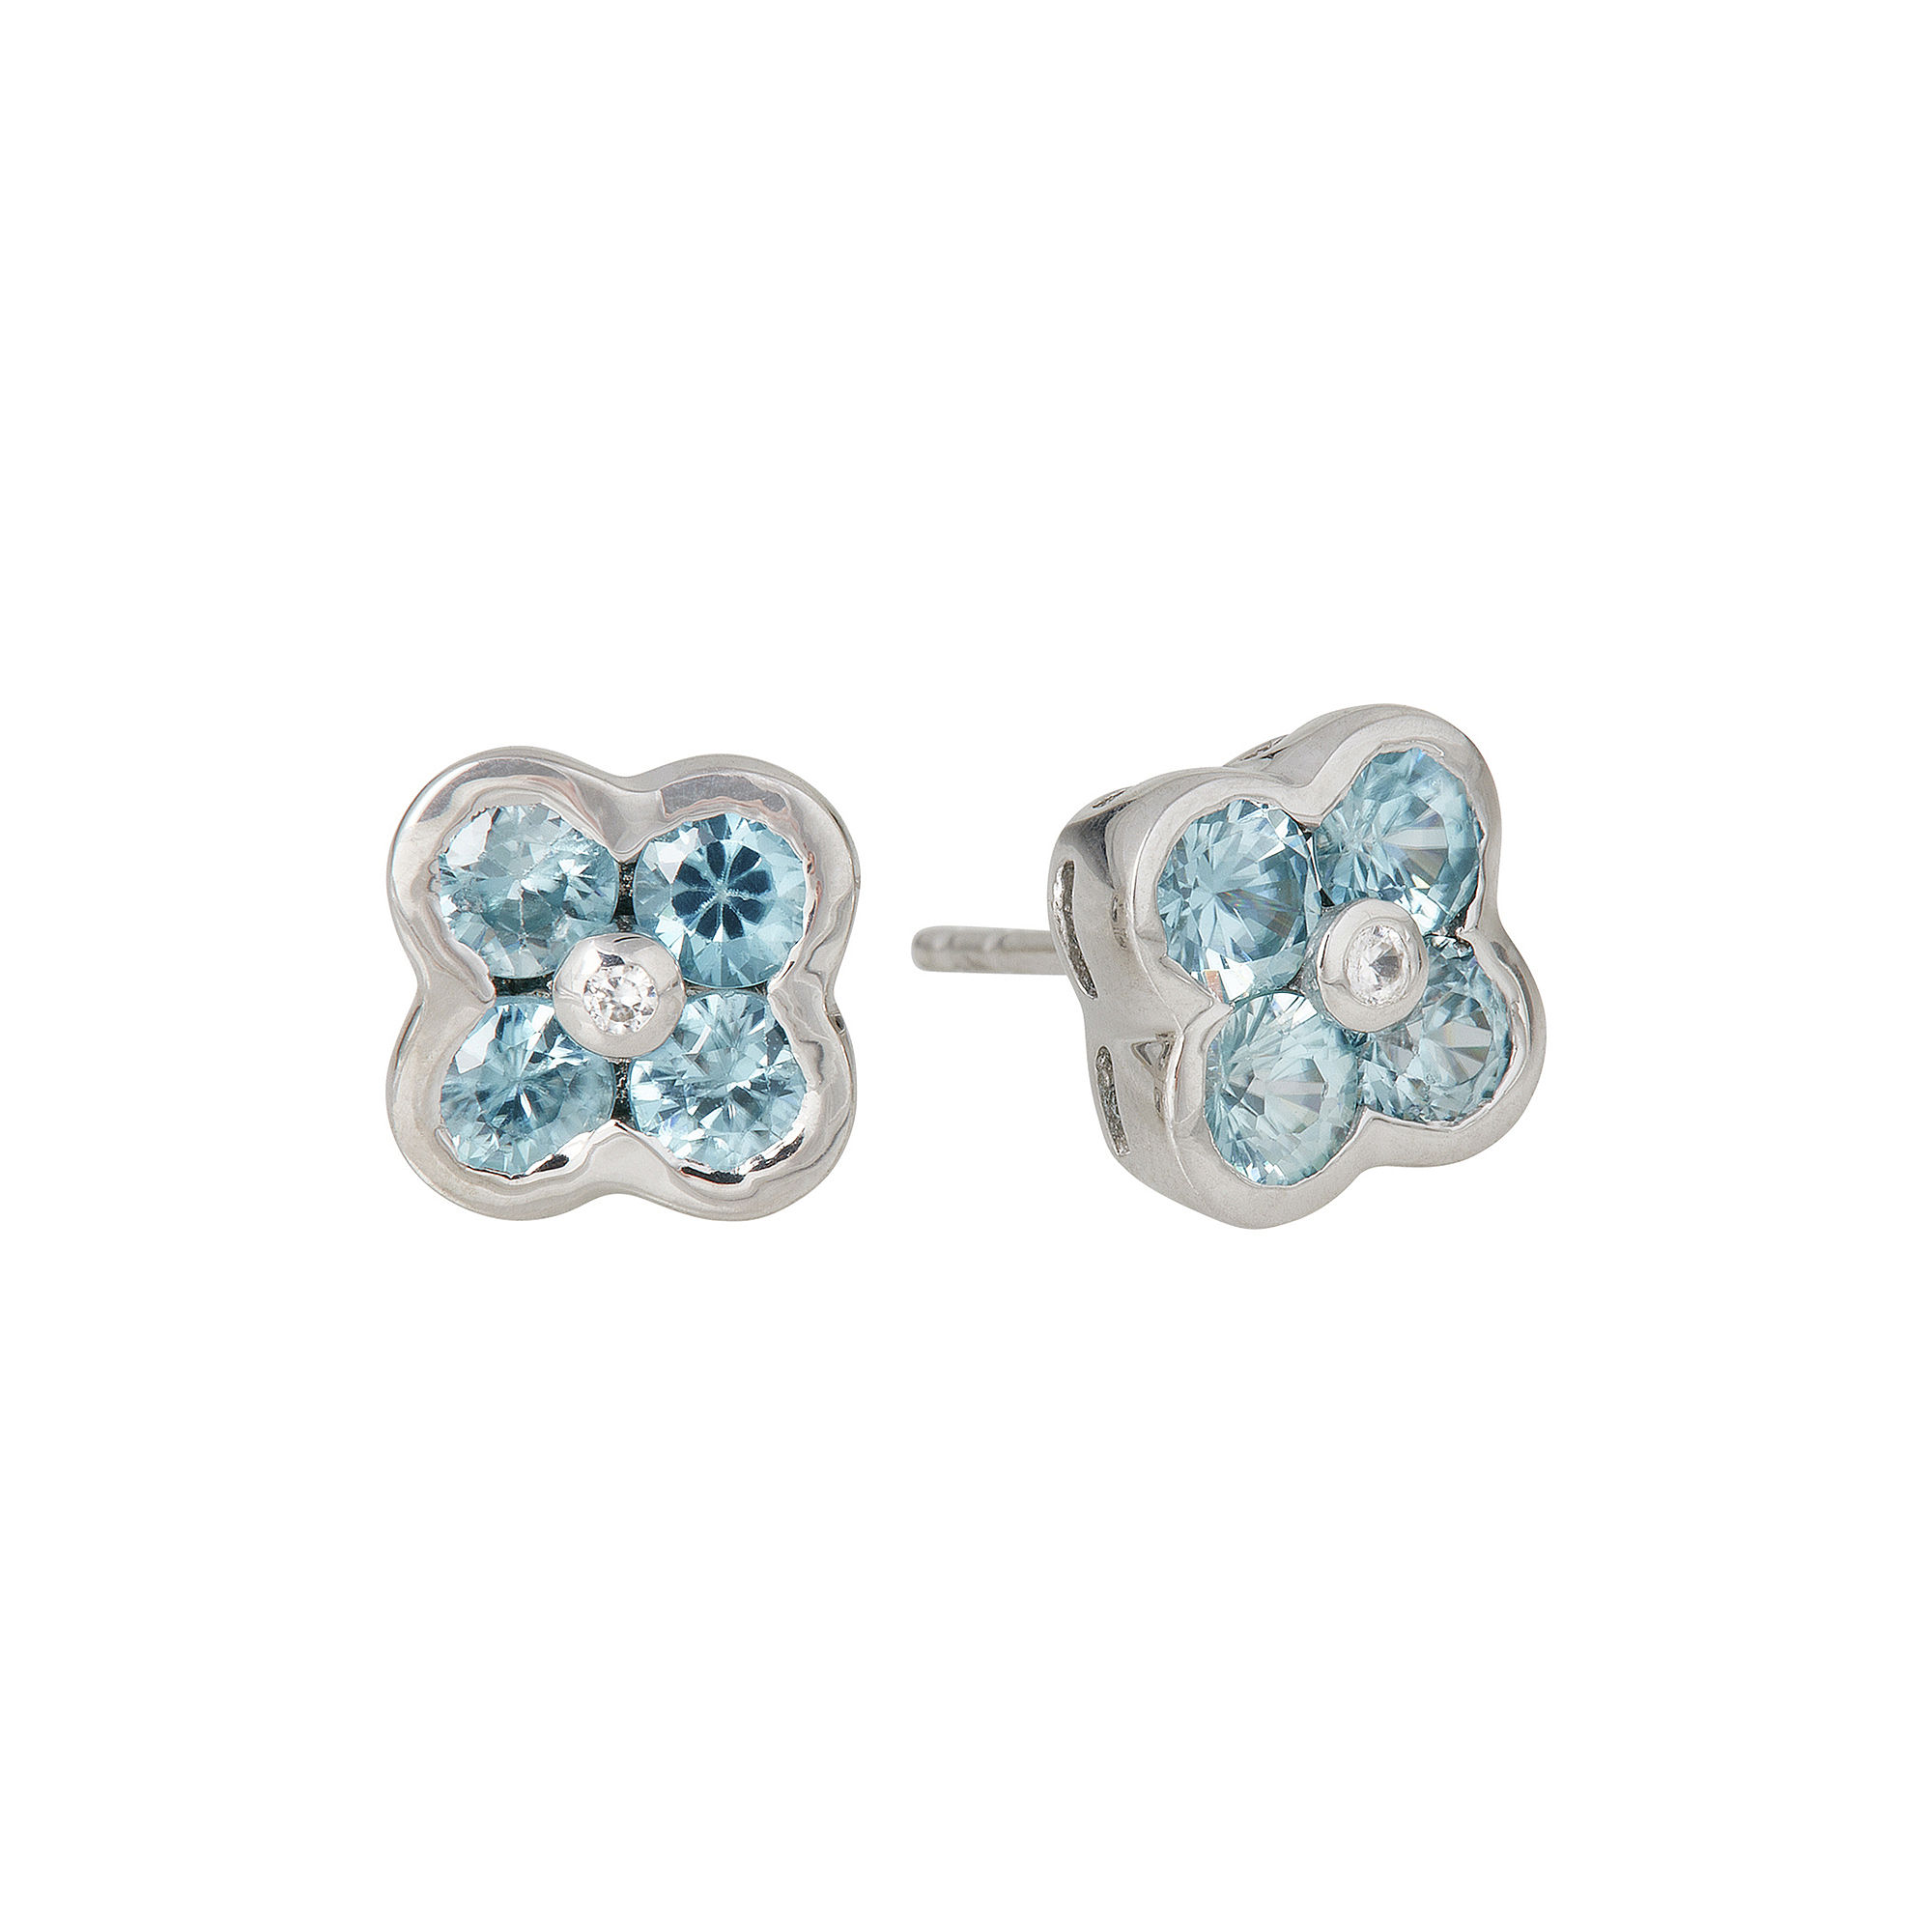 LIMITED QUANTITIES Genuine Blue Zircon Flower Stud Earrings